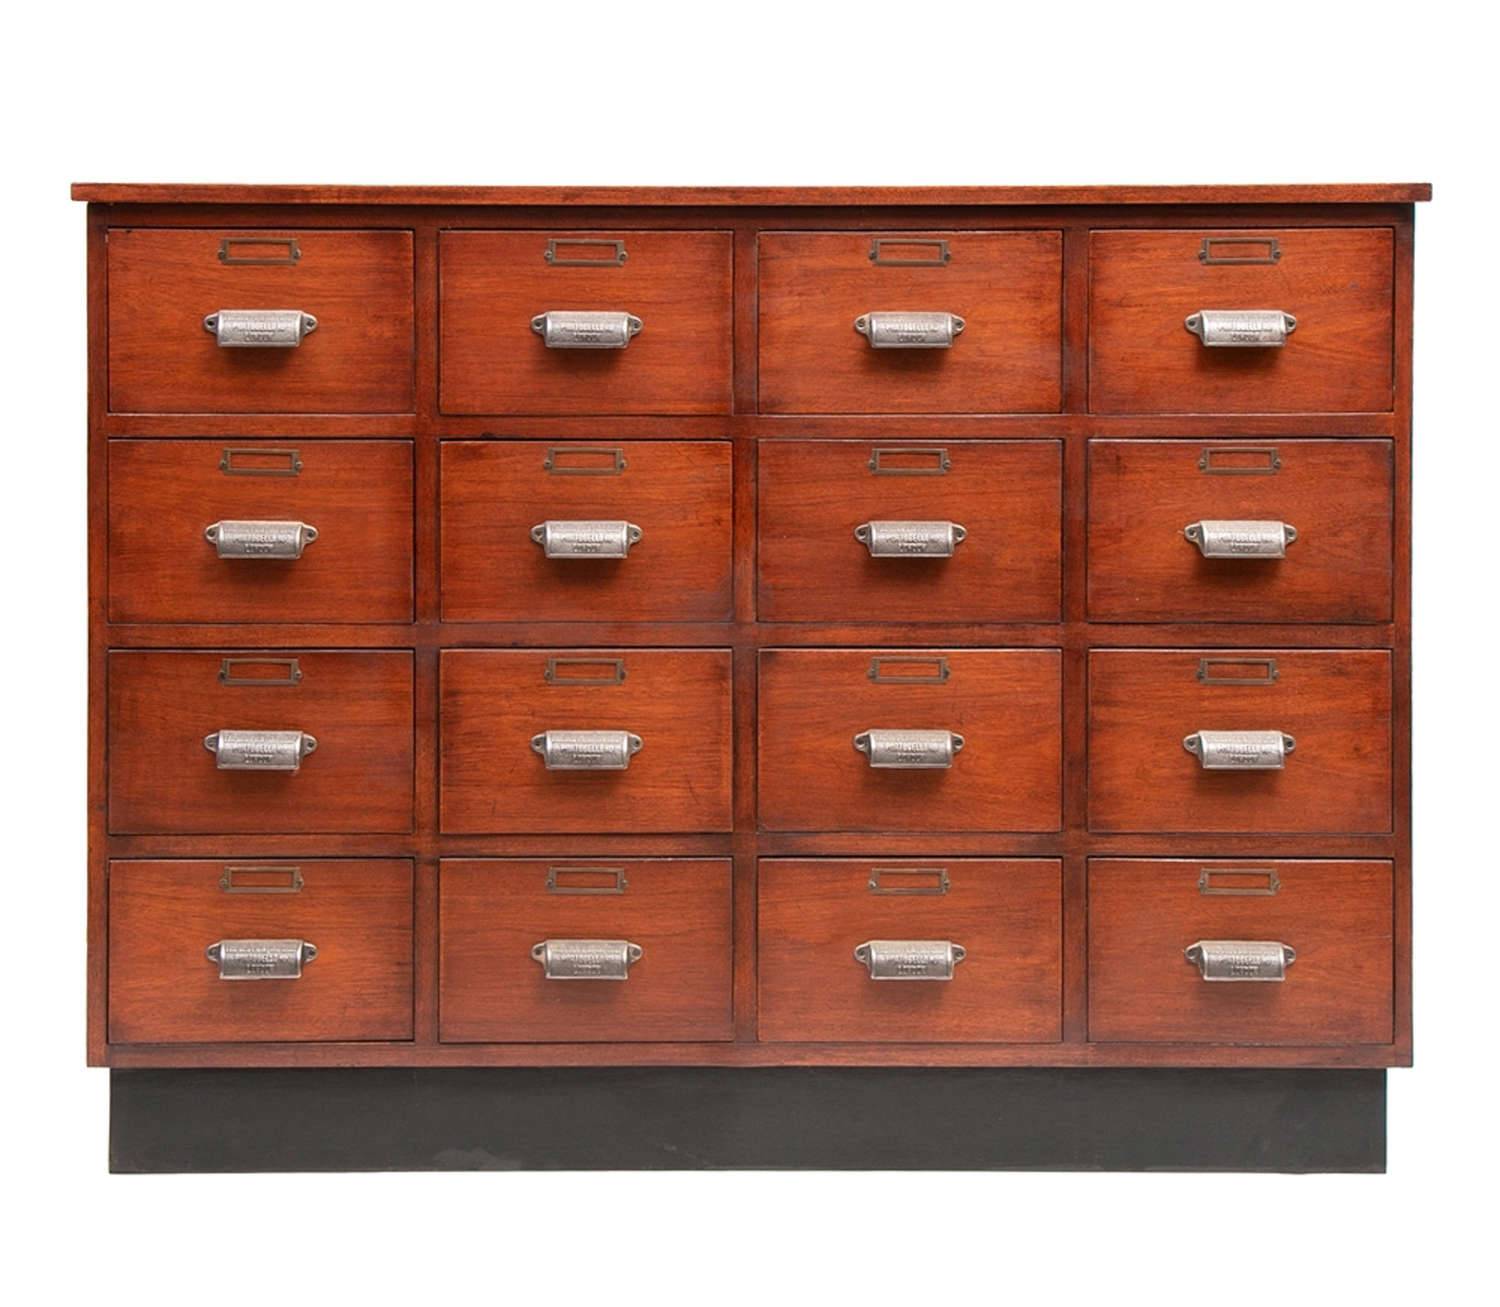 A contemporary bank of drawers made in mahogany